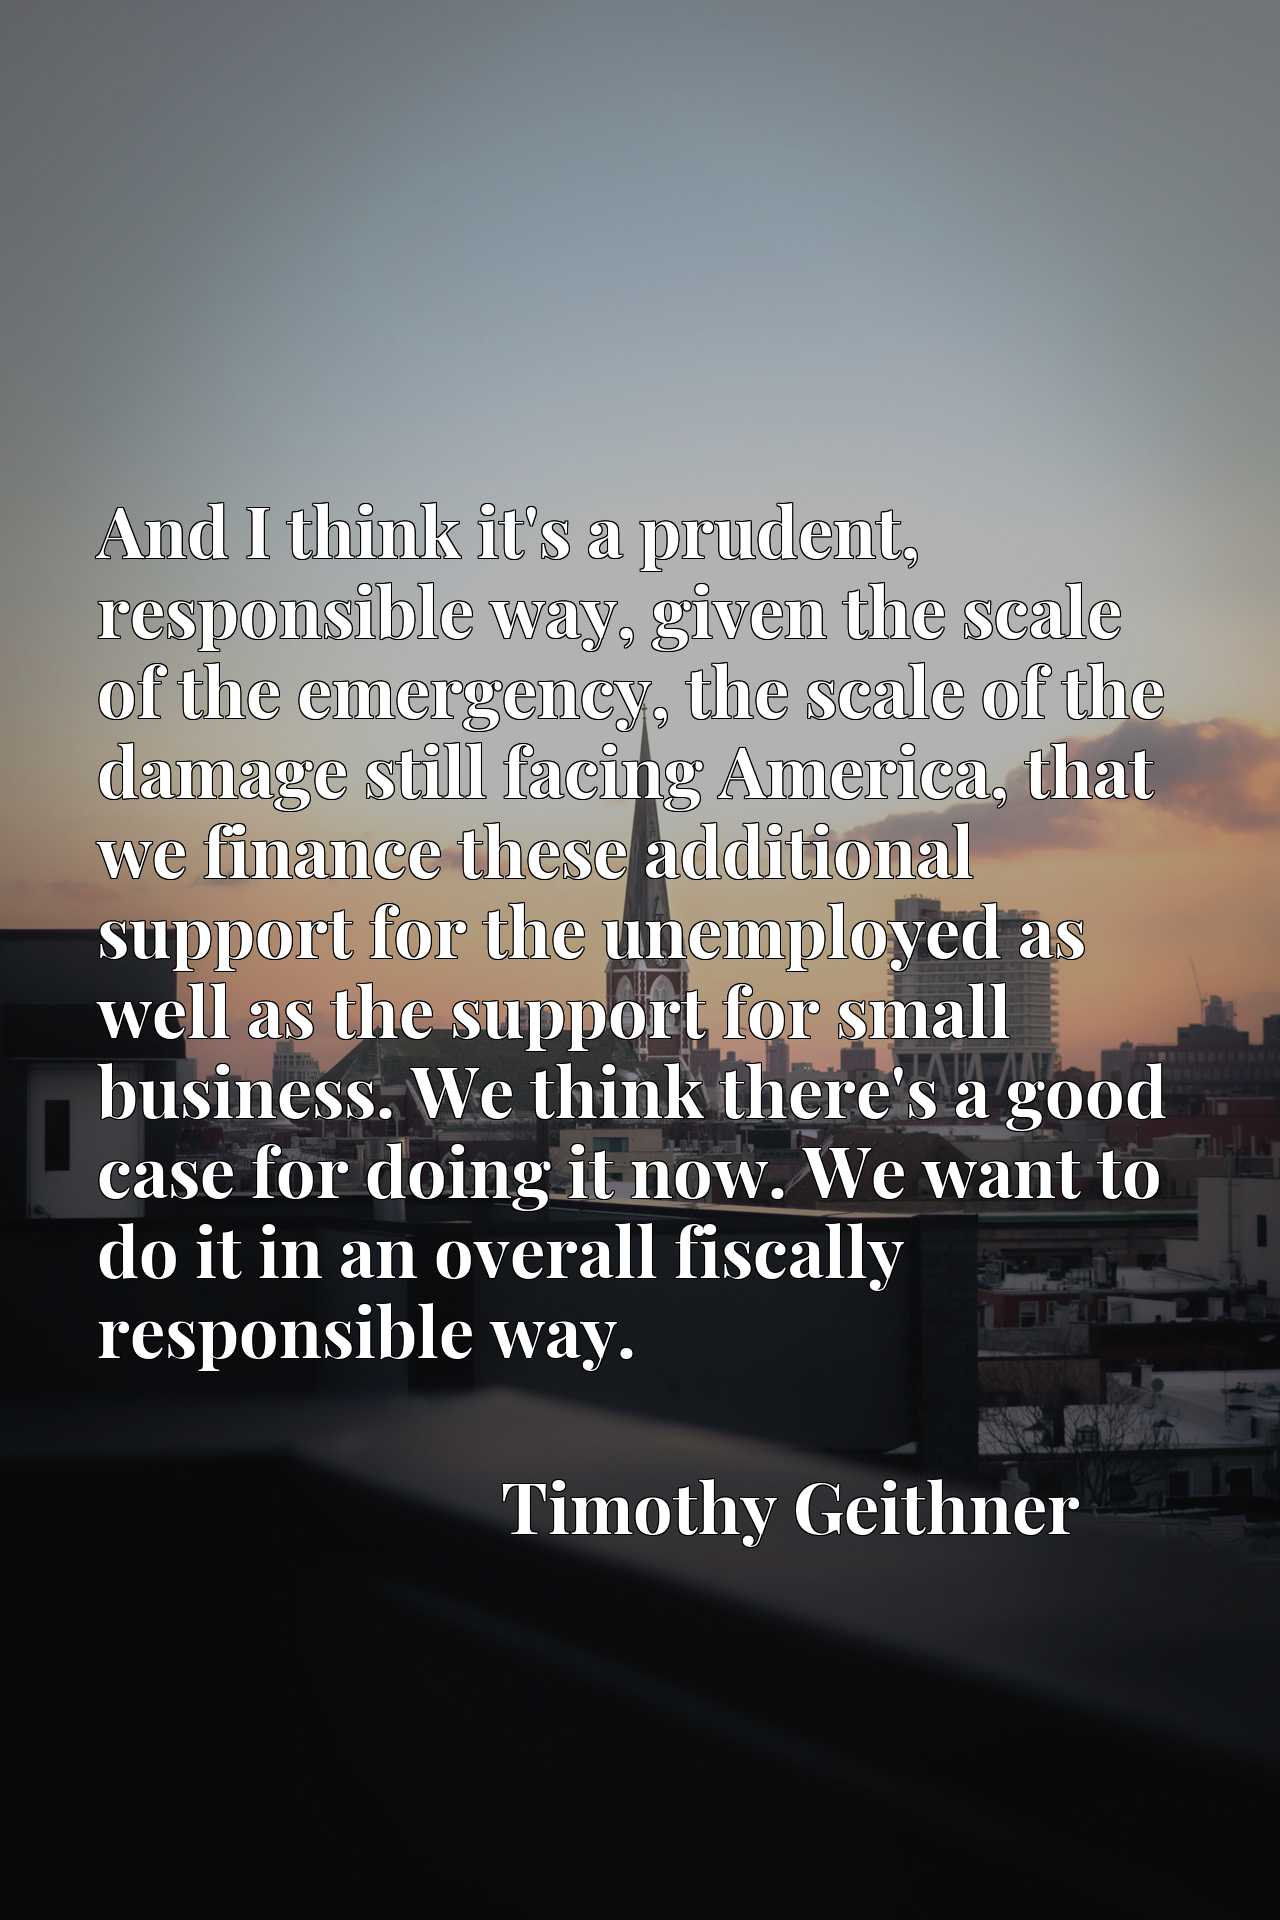 And I think it's a prudent, responsible way, given the scale of the emergency, the scale of the damage still facing America, that we finance these additional support for the unemployed as well as the support for small business. We think there's a good case for doing it now. We want to do it in an overall fiscally responsible way.